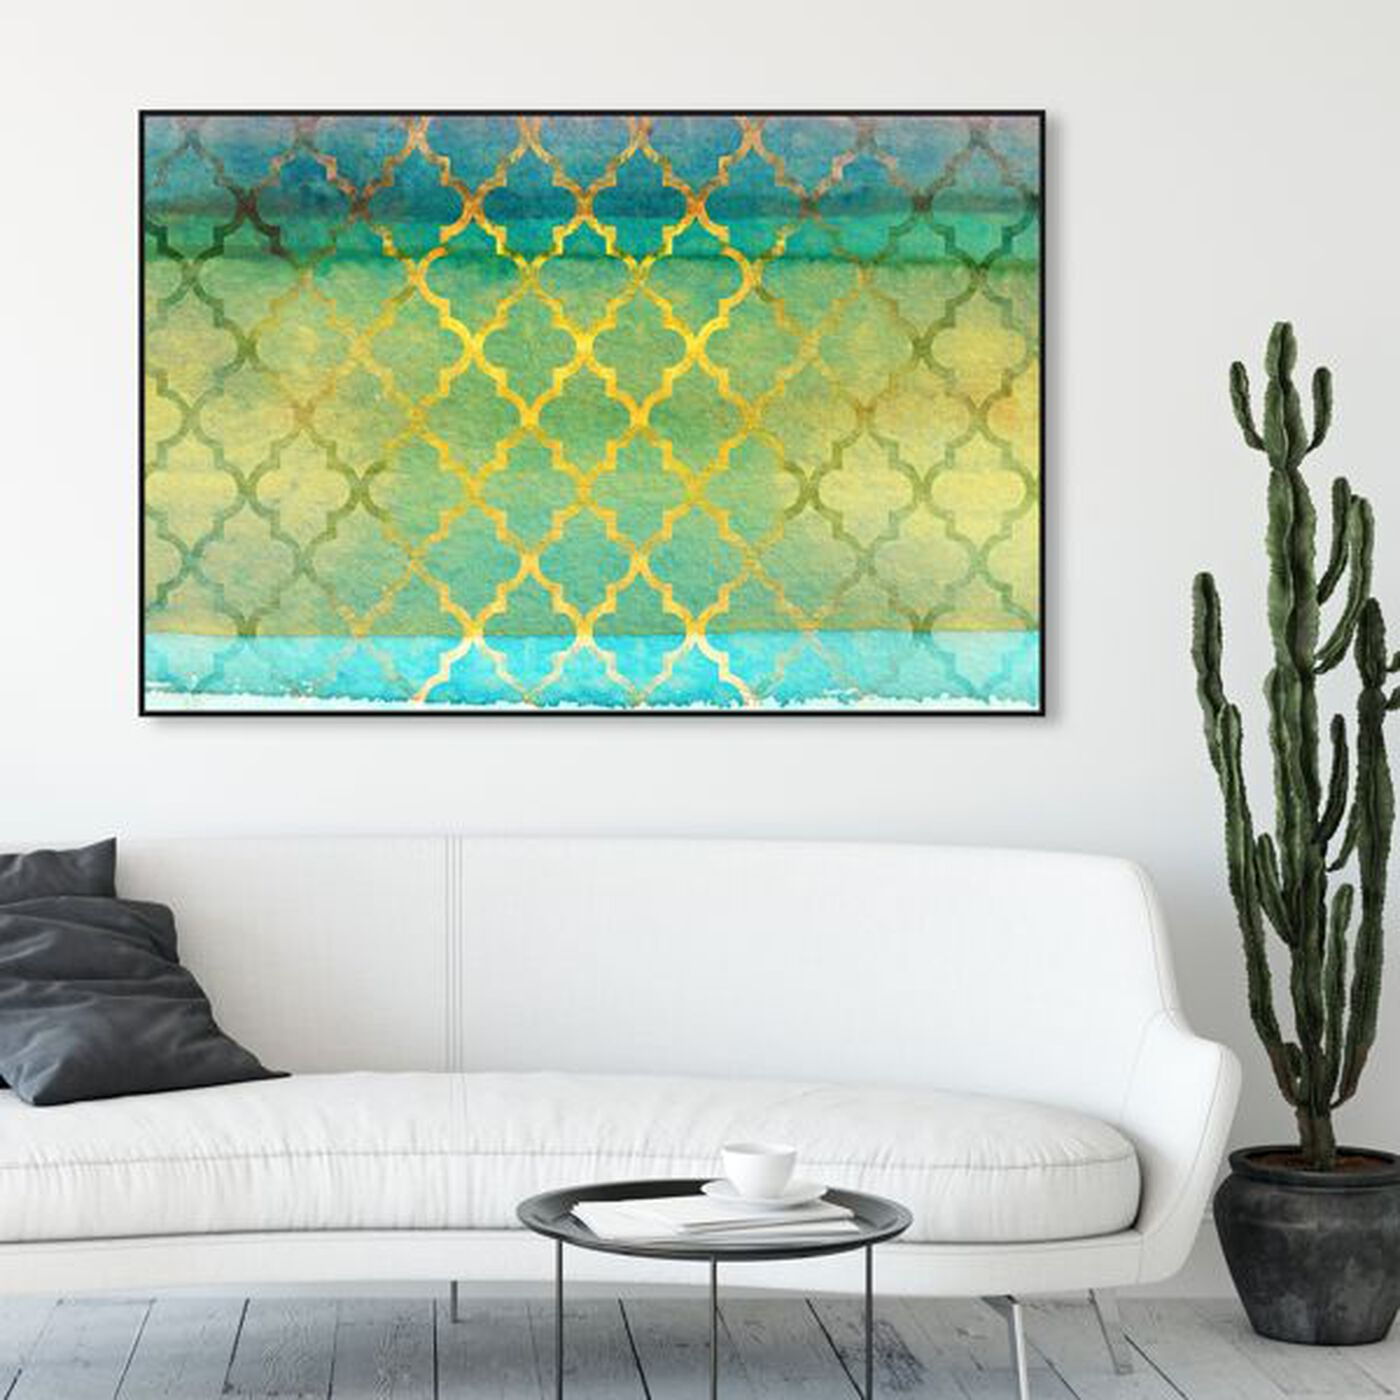 Hanging view of Alakran featuring abstract and patterns art.